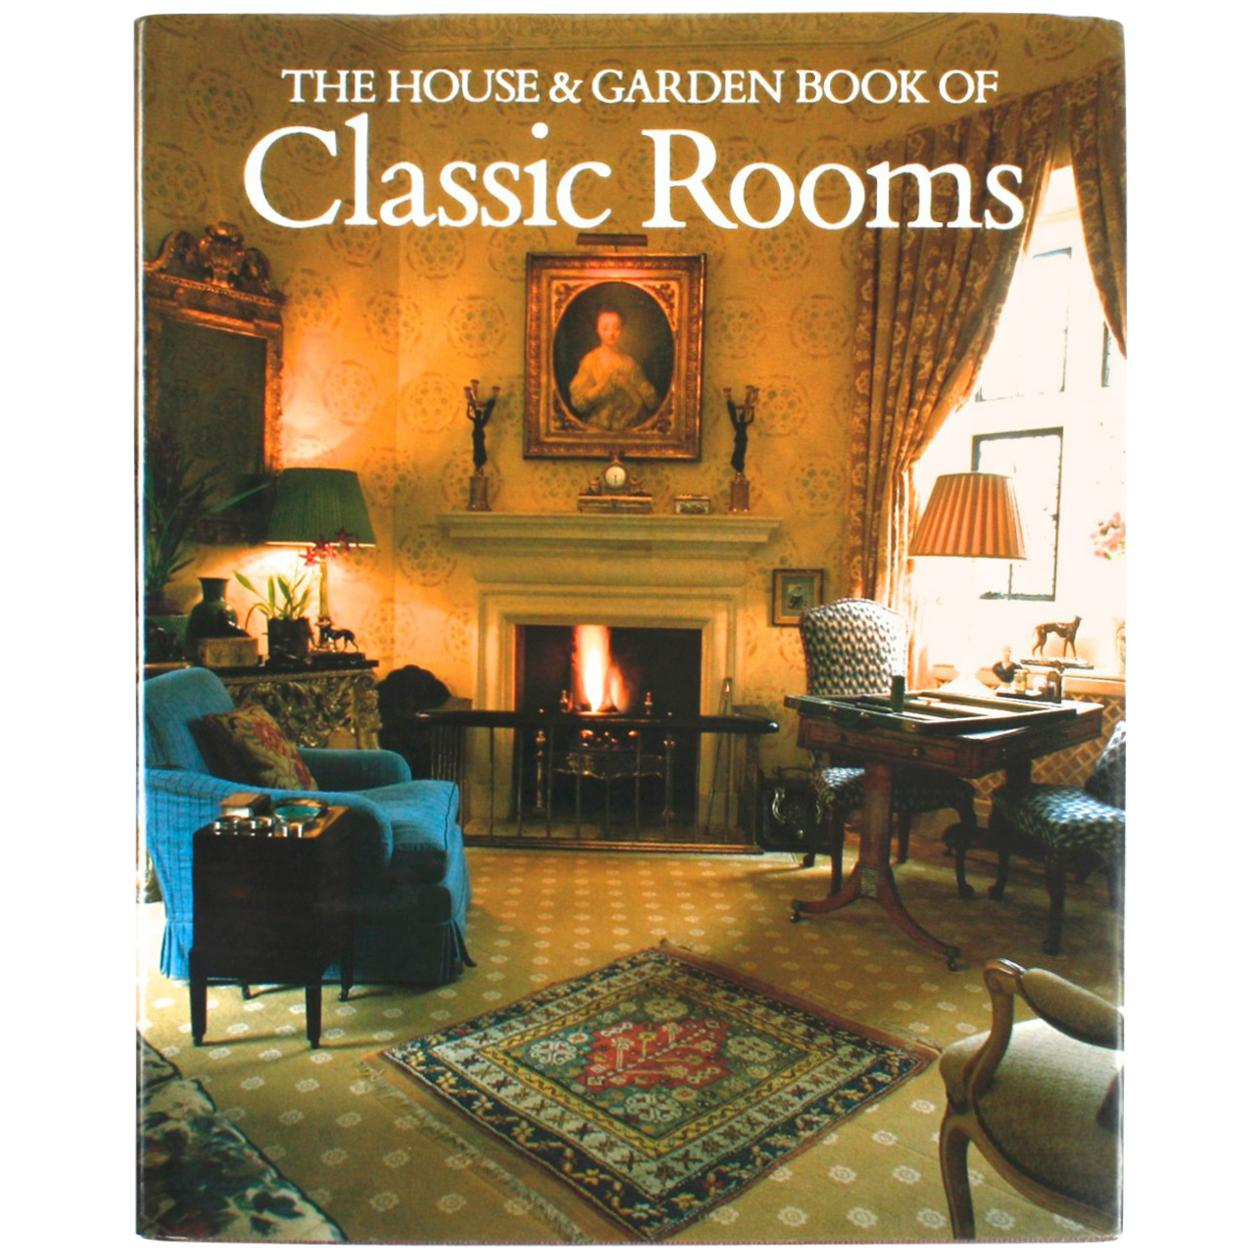 The House and Garden Book of Classic Rooms, First Edition